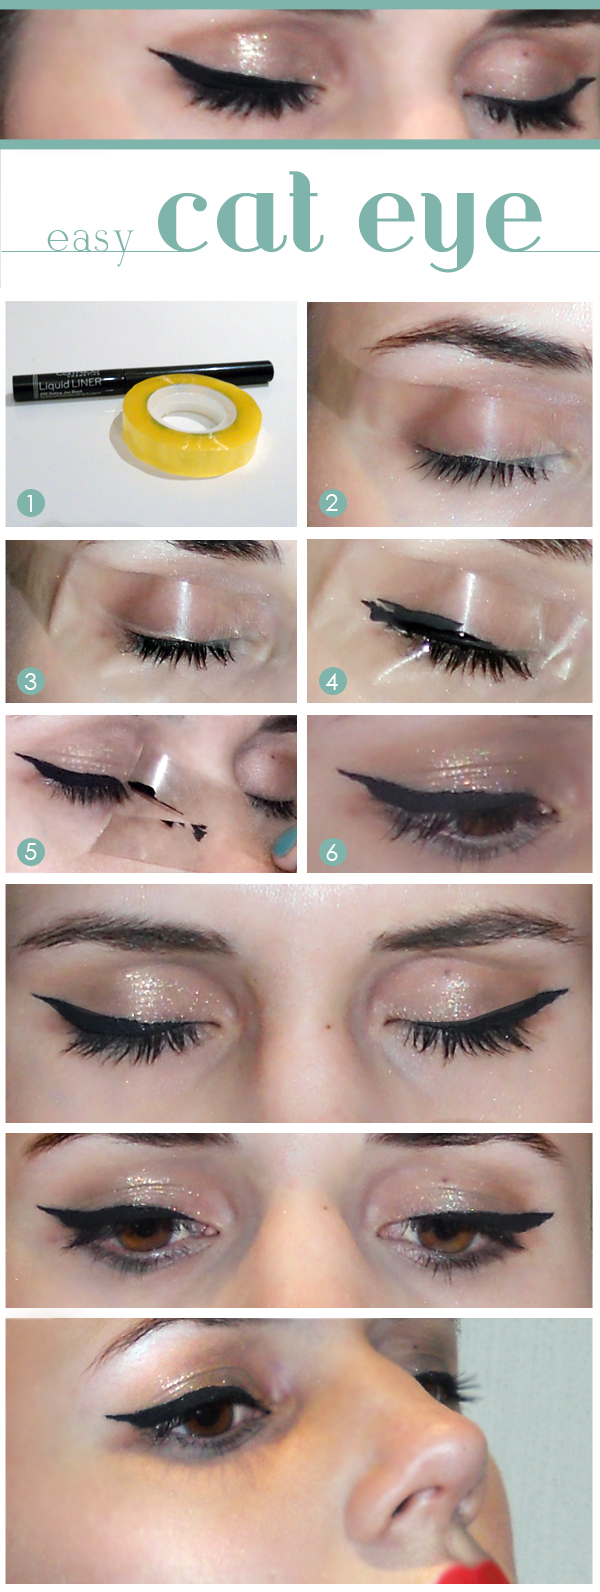 Place a tape just beneath your lower lash line and make a beautiful winged eyeliner.